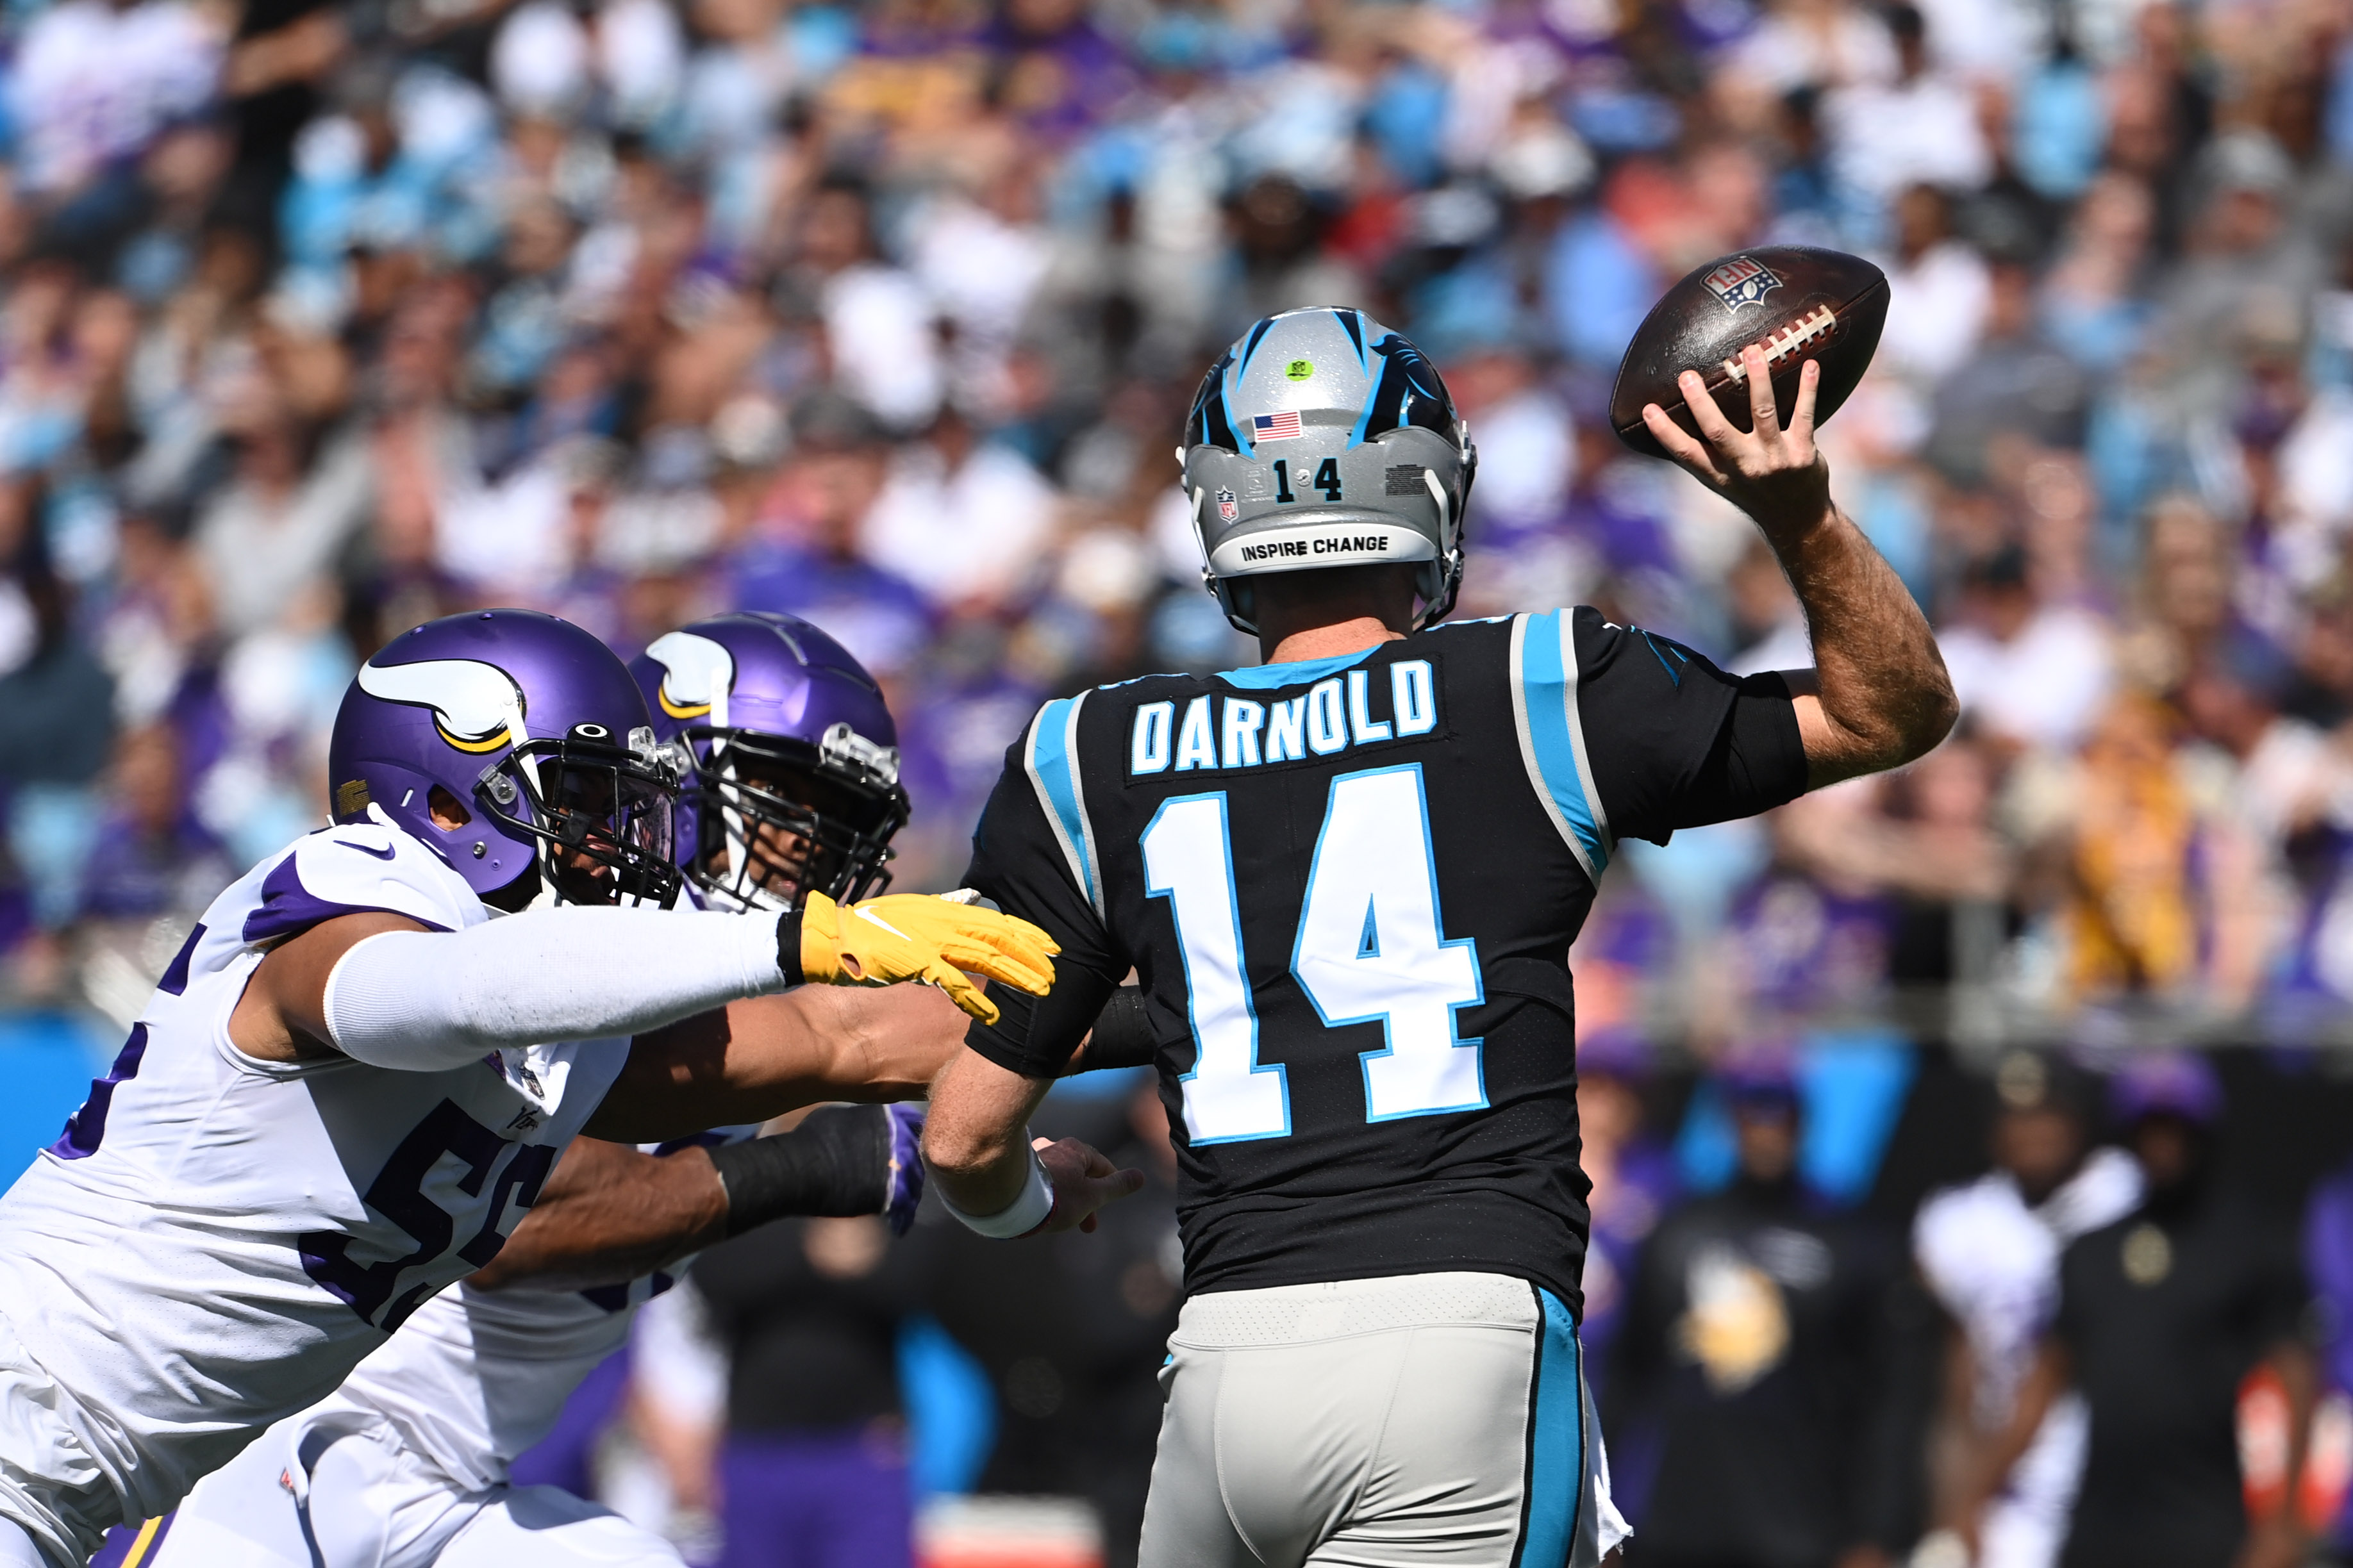 Carolina Panthers quarterback Sam Darnold (14) looks to pass as Minnesota Vikings outside linebacker Anthony Barr (55) and defensive end Danielle Hunter (99) defend in the second quarter at Bank of America Stadium.